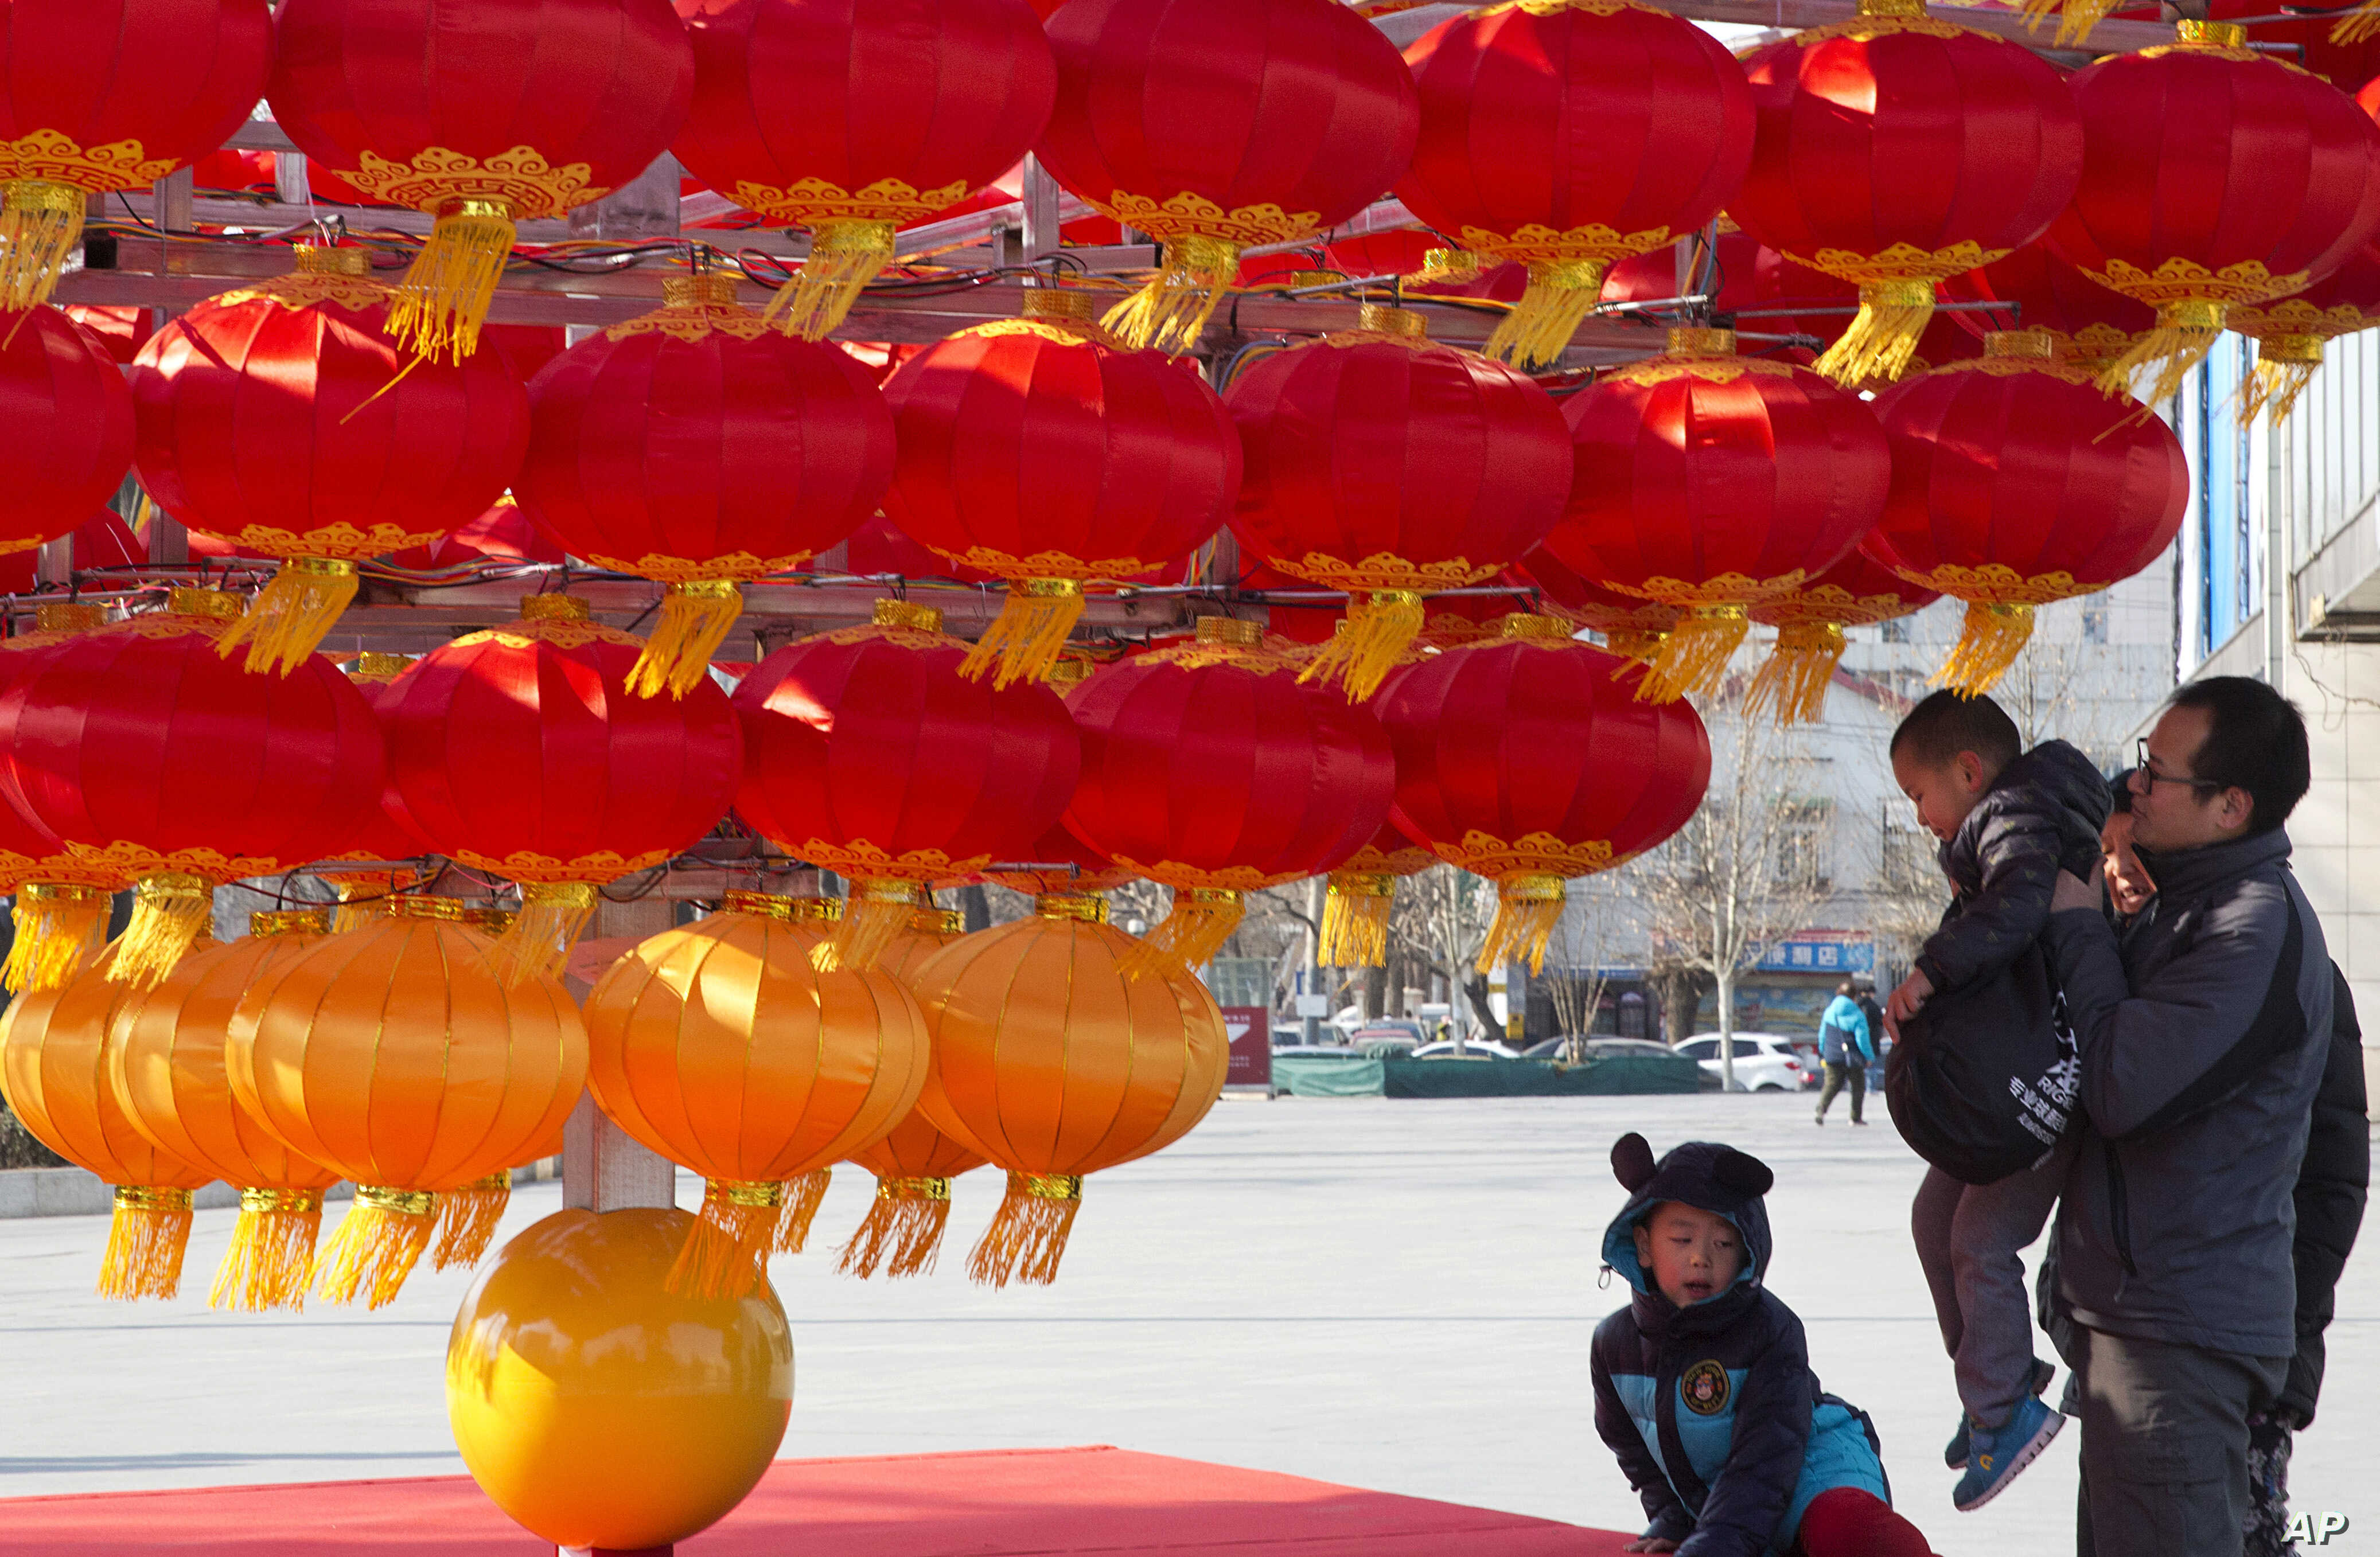 FILE - A man lifts a child up to lantern decorations setup ahead of the Chinese New Year in Beijing, China. China's National Health and Family Planning Commission announced recently that 17.86 million children were born last year, an increase of 1.31...